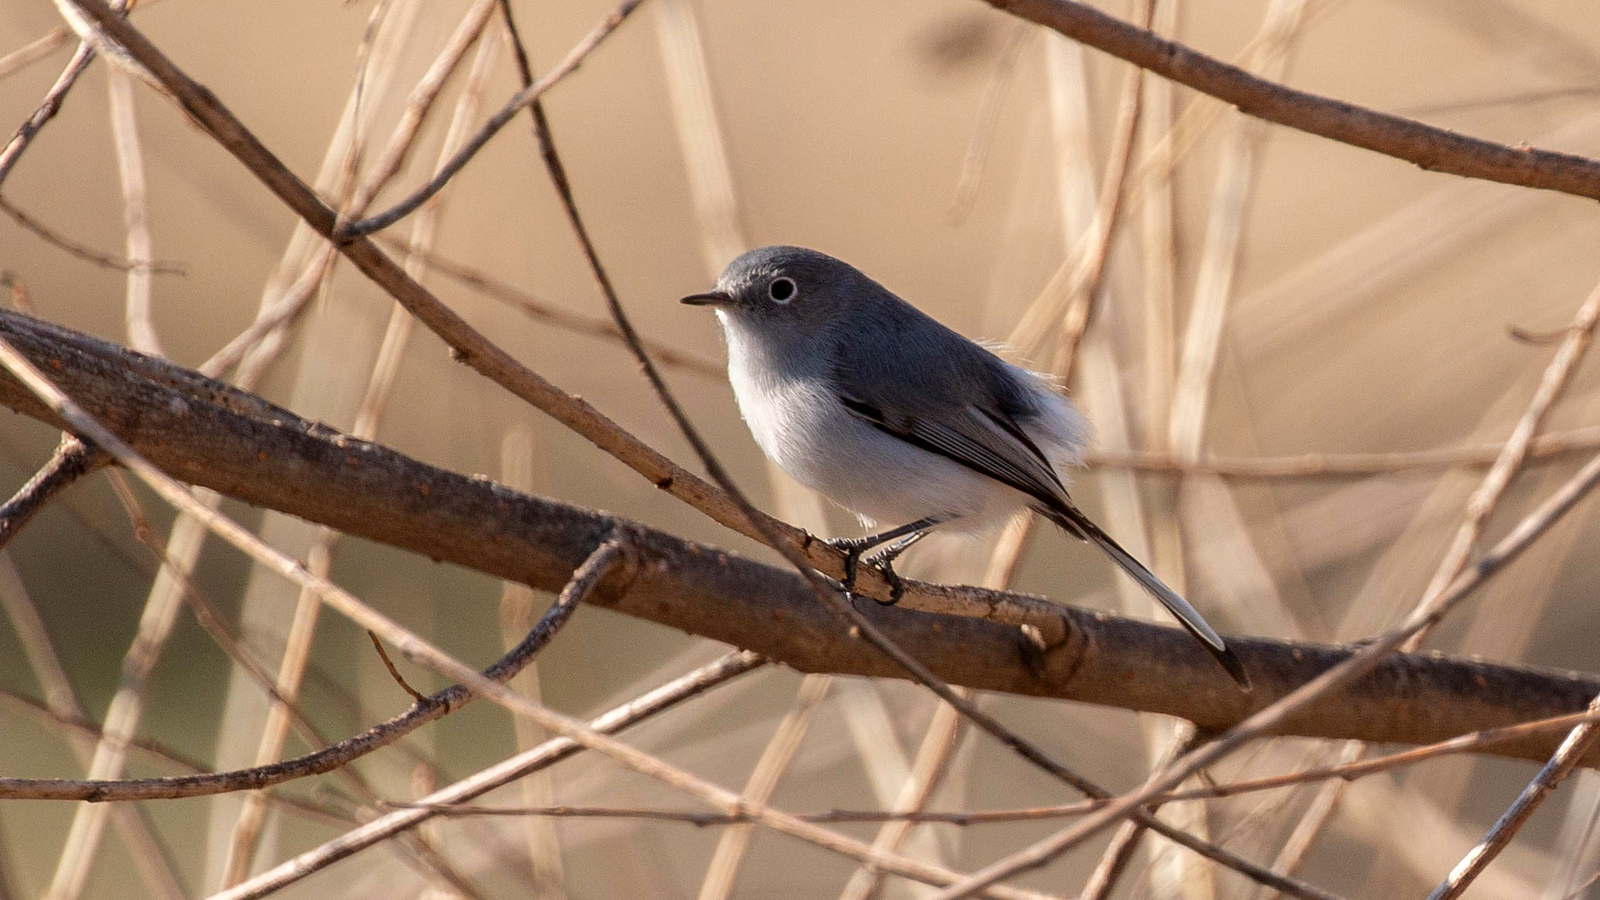 Photograph of a Blue-gray Gnatcatcher